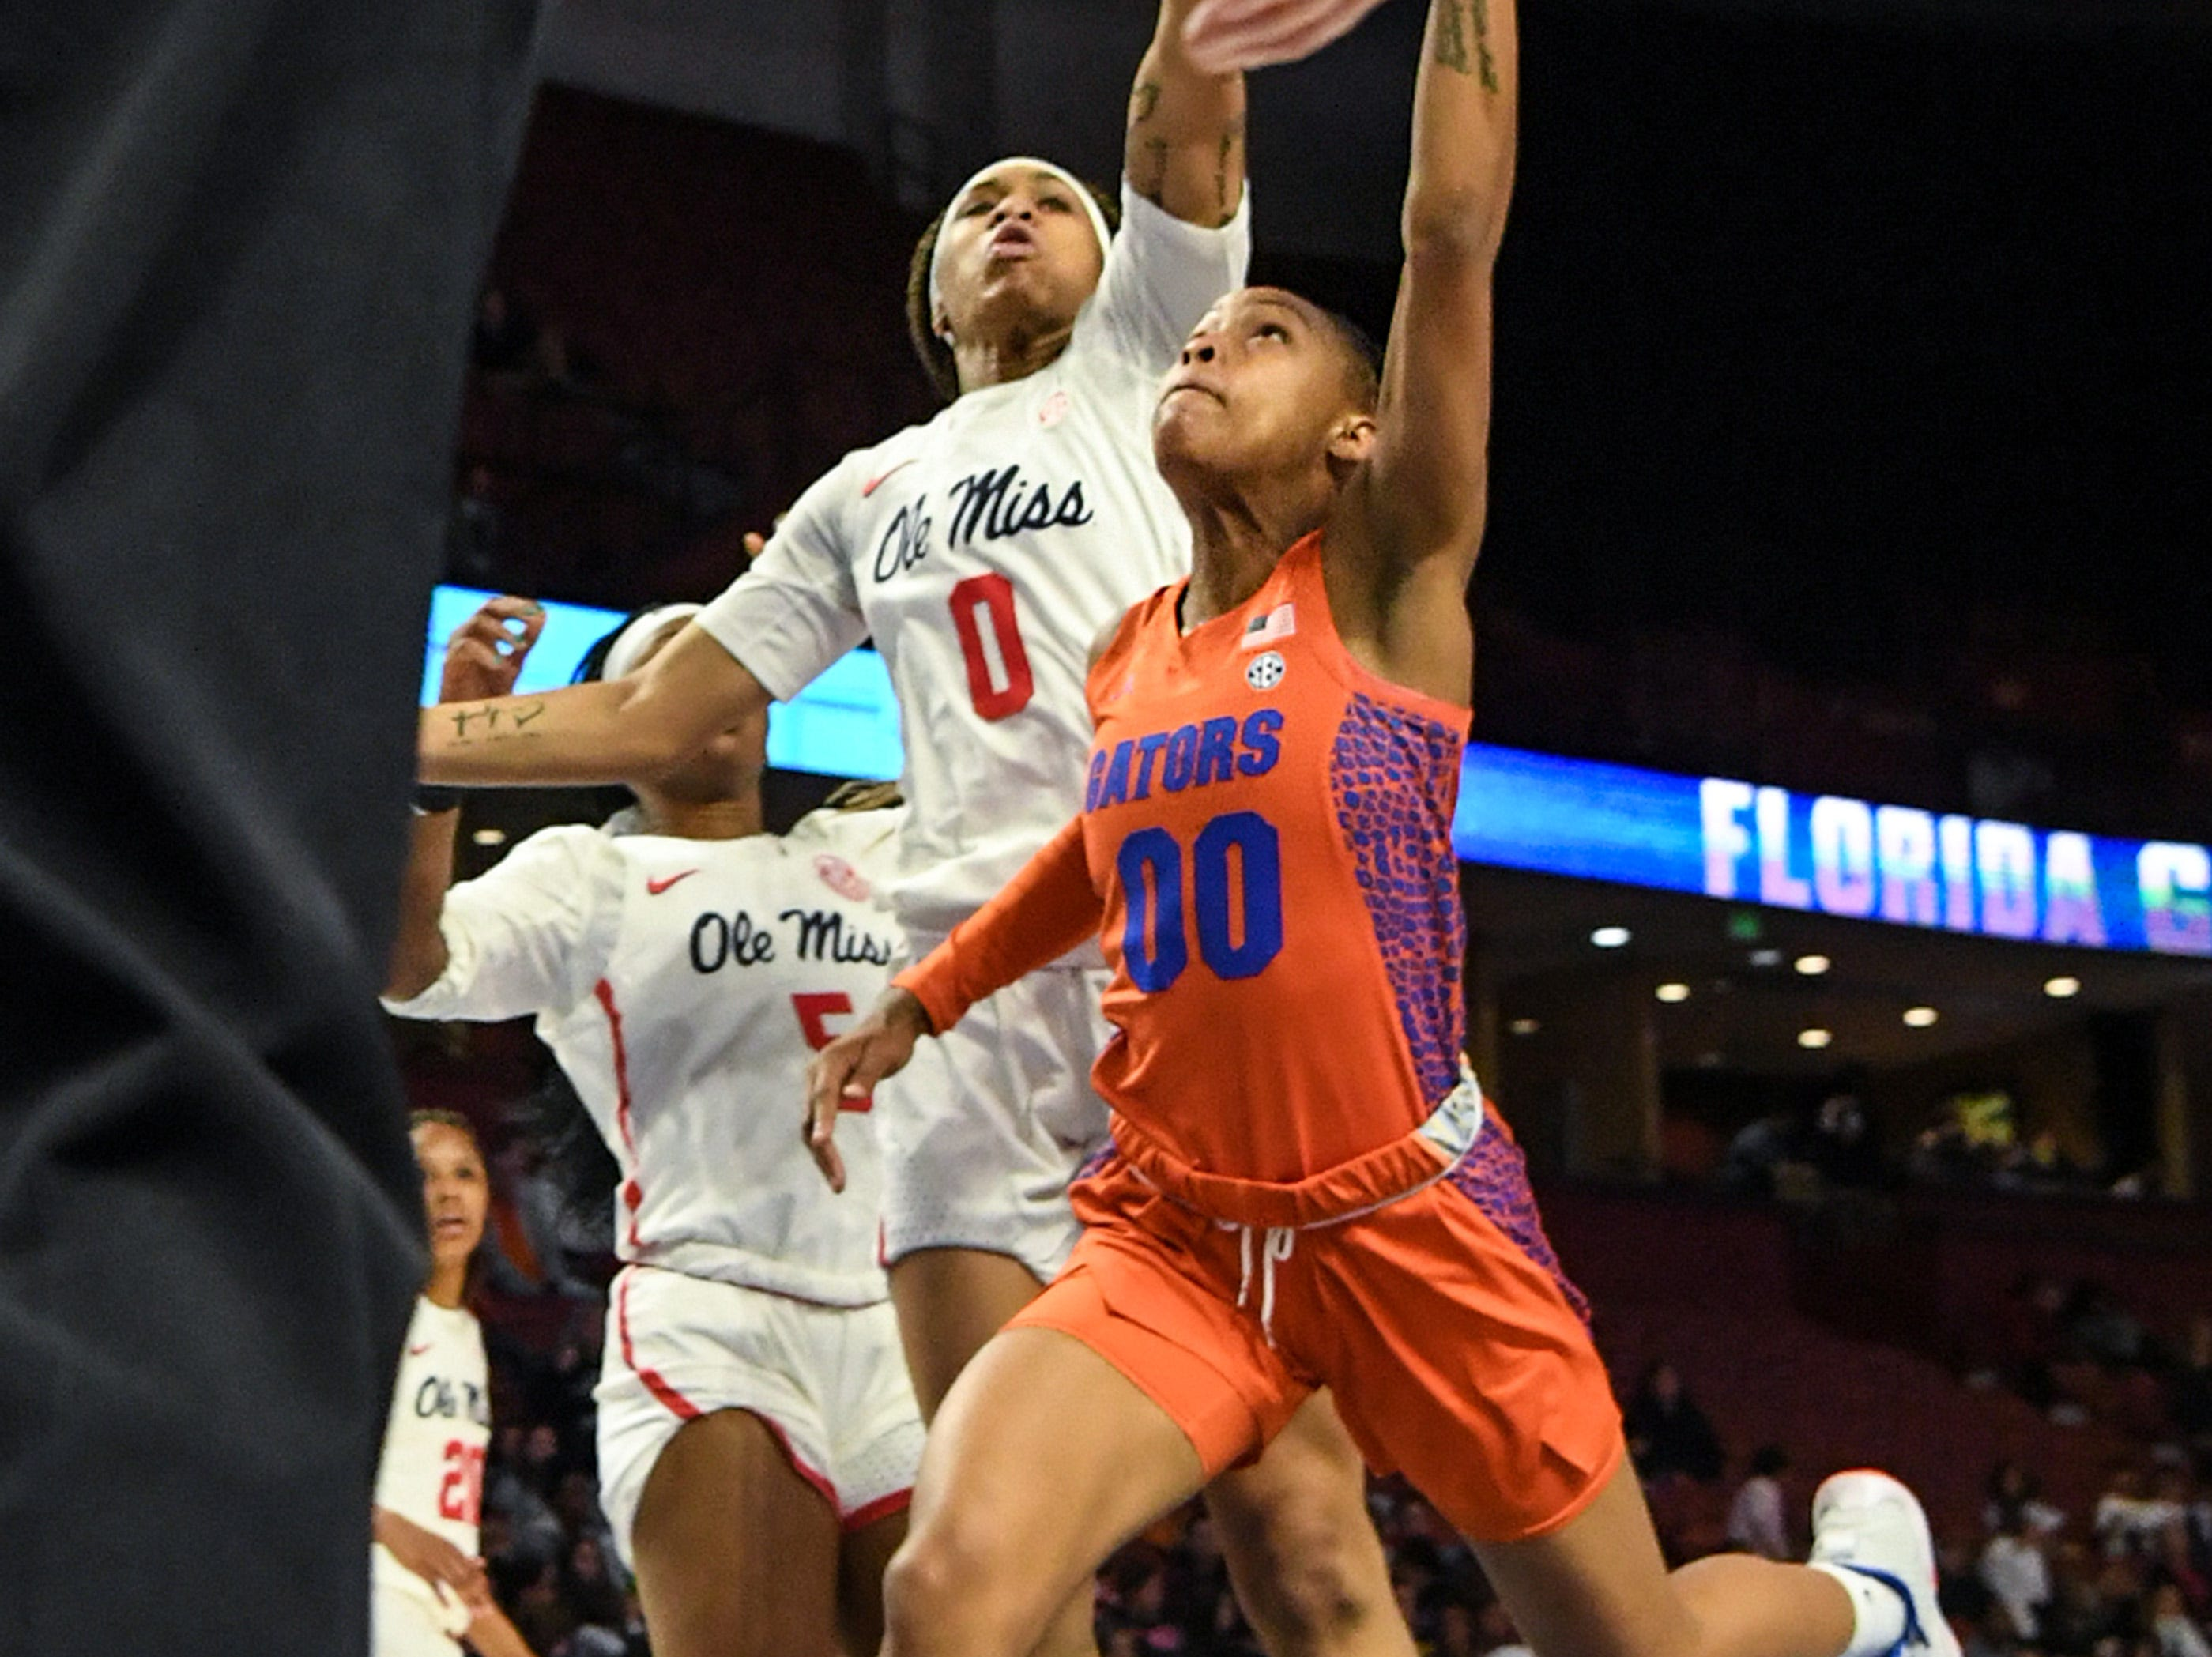 Florida forward Emer Nichols(30) shoots near Ole Miss freshman Gabby Crawford(0) during the fourth quarter of the Southeastern Conference Women's Tournament game at Bon Secour Wellness Arena in Greenville Wednesday, March 6, 2019.